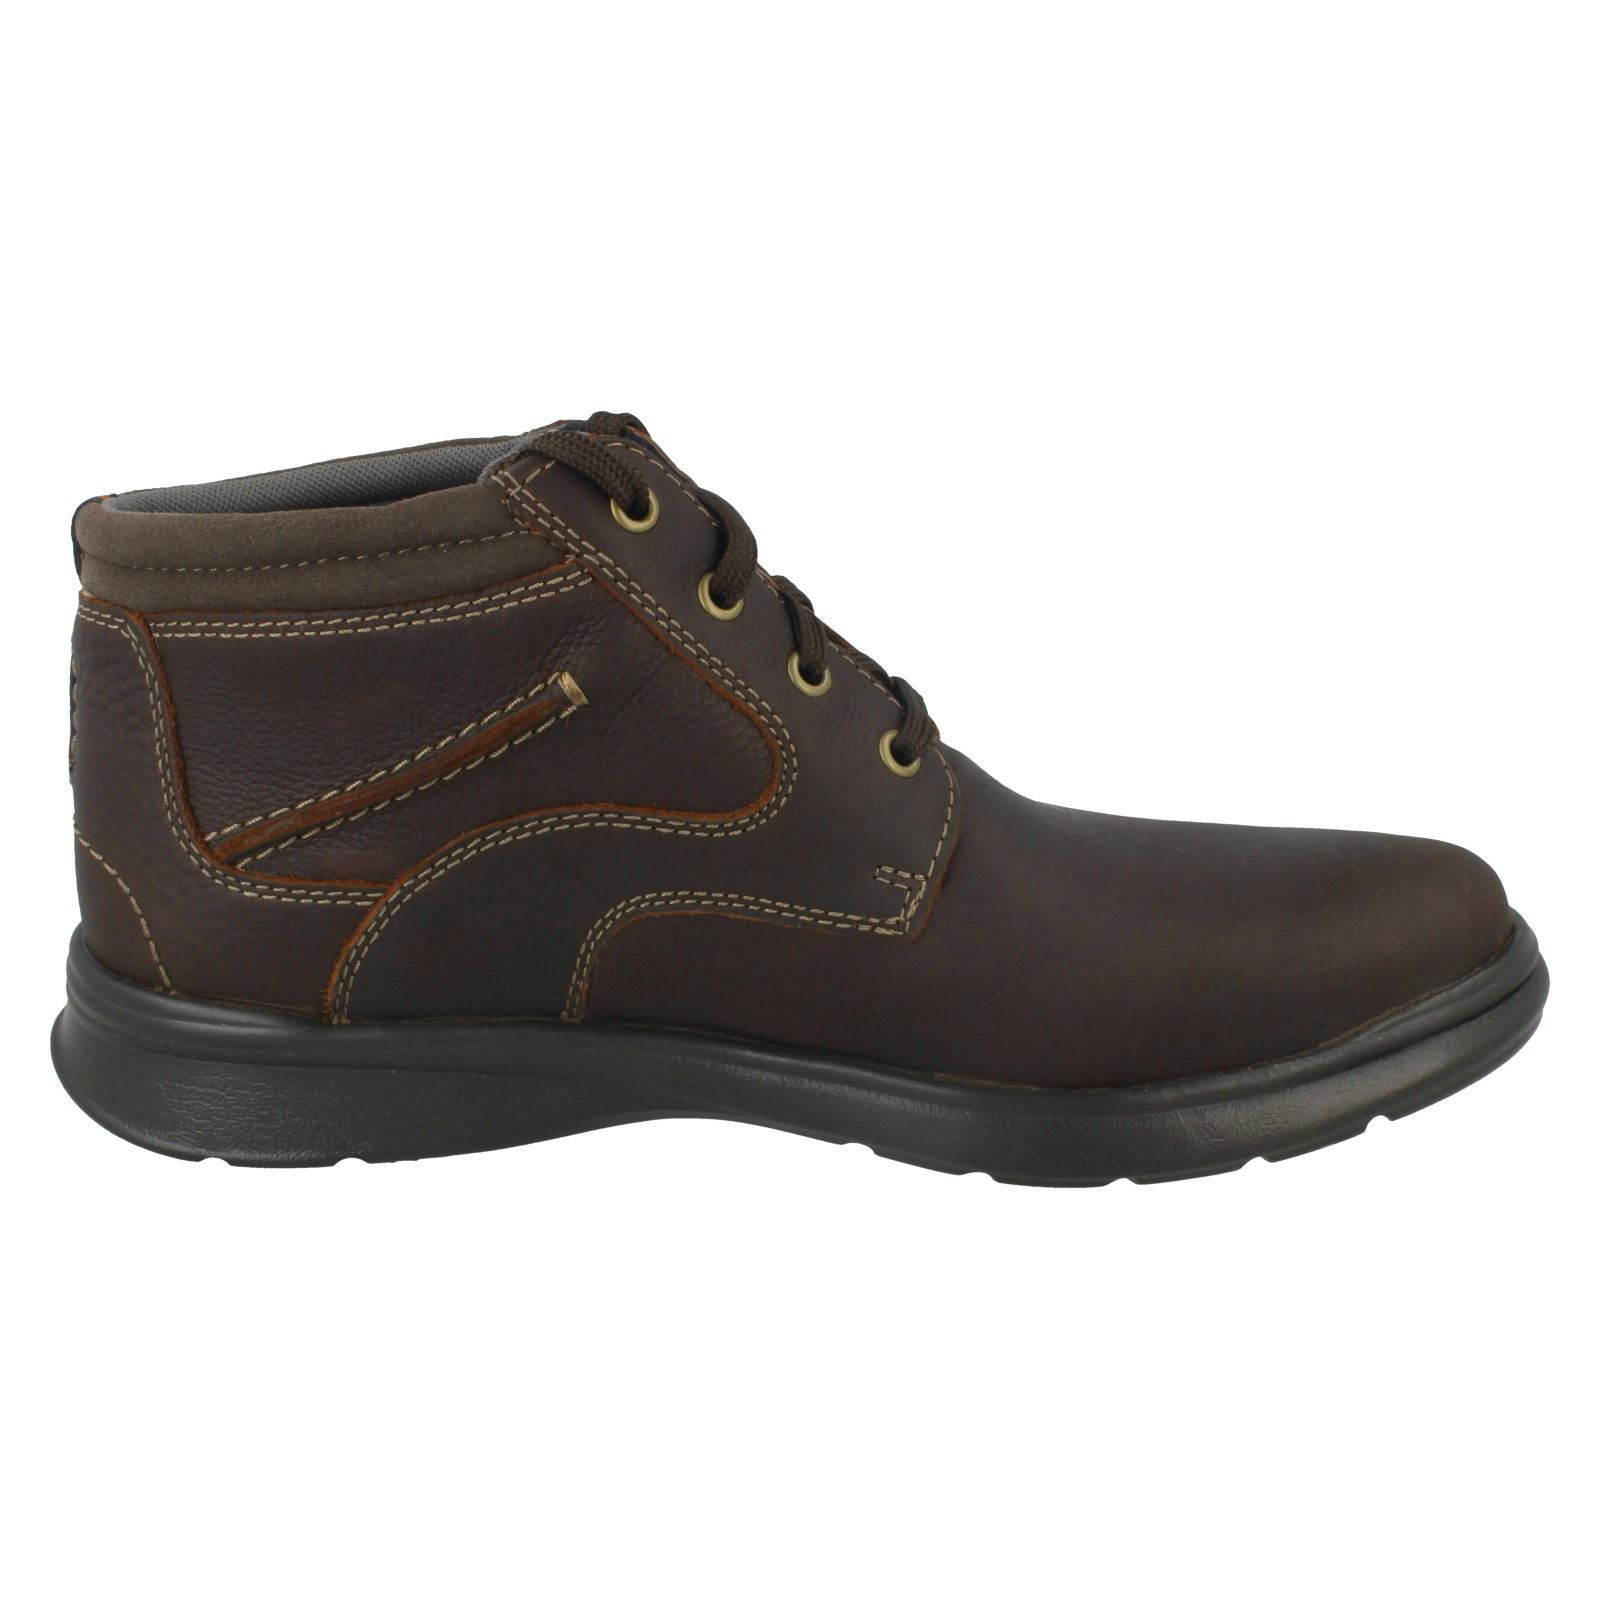 Mens-Clarks-Cotrell-Rise-Casual-Lace-Up-Ankle-Boots thumbnail 16